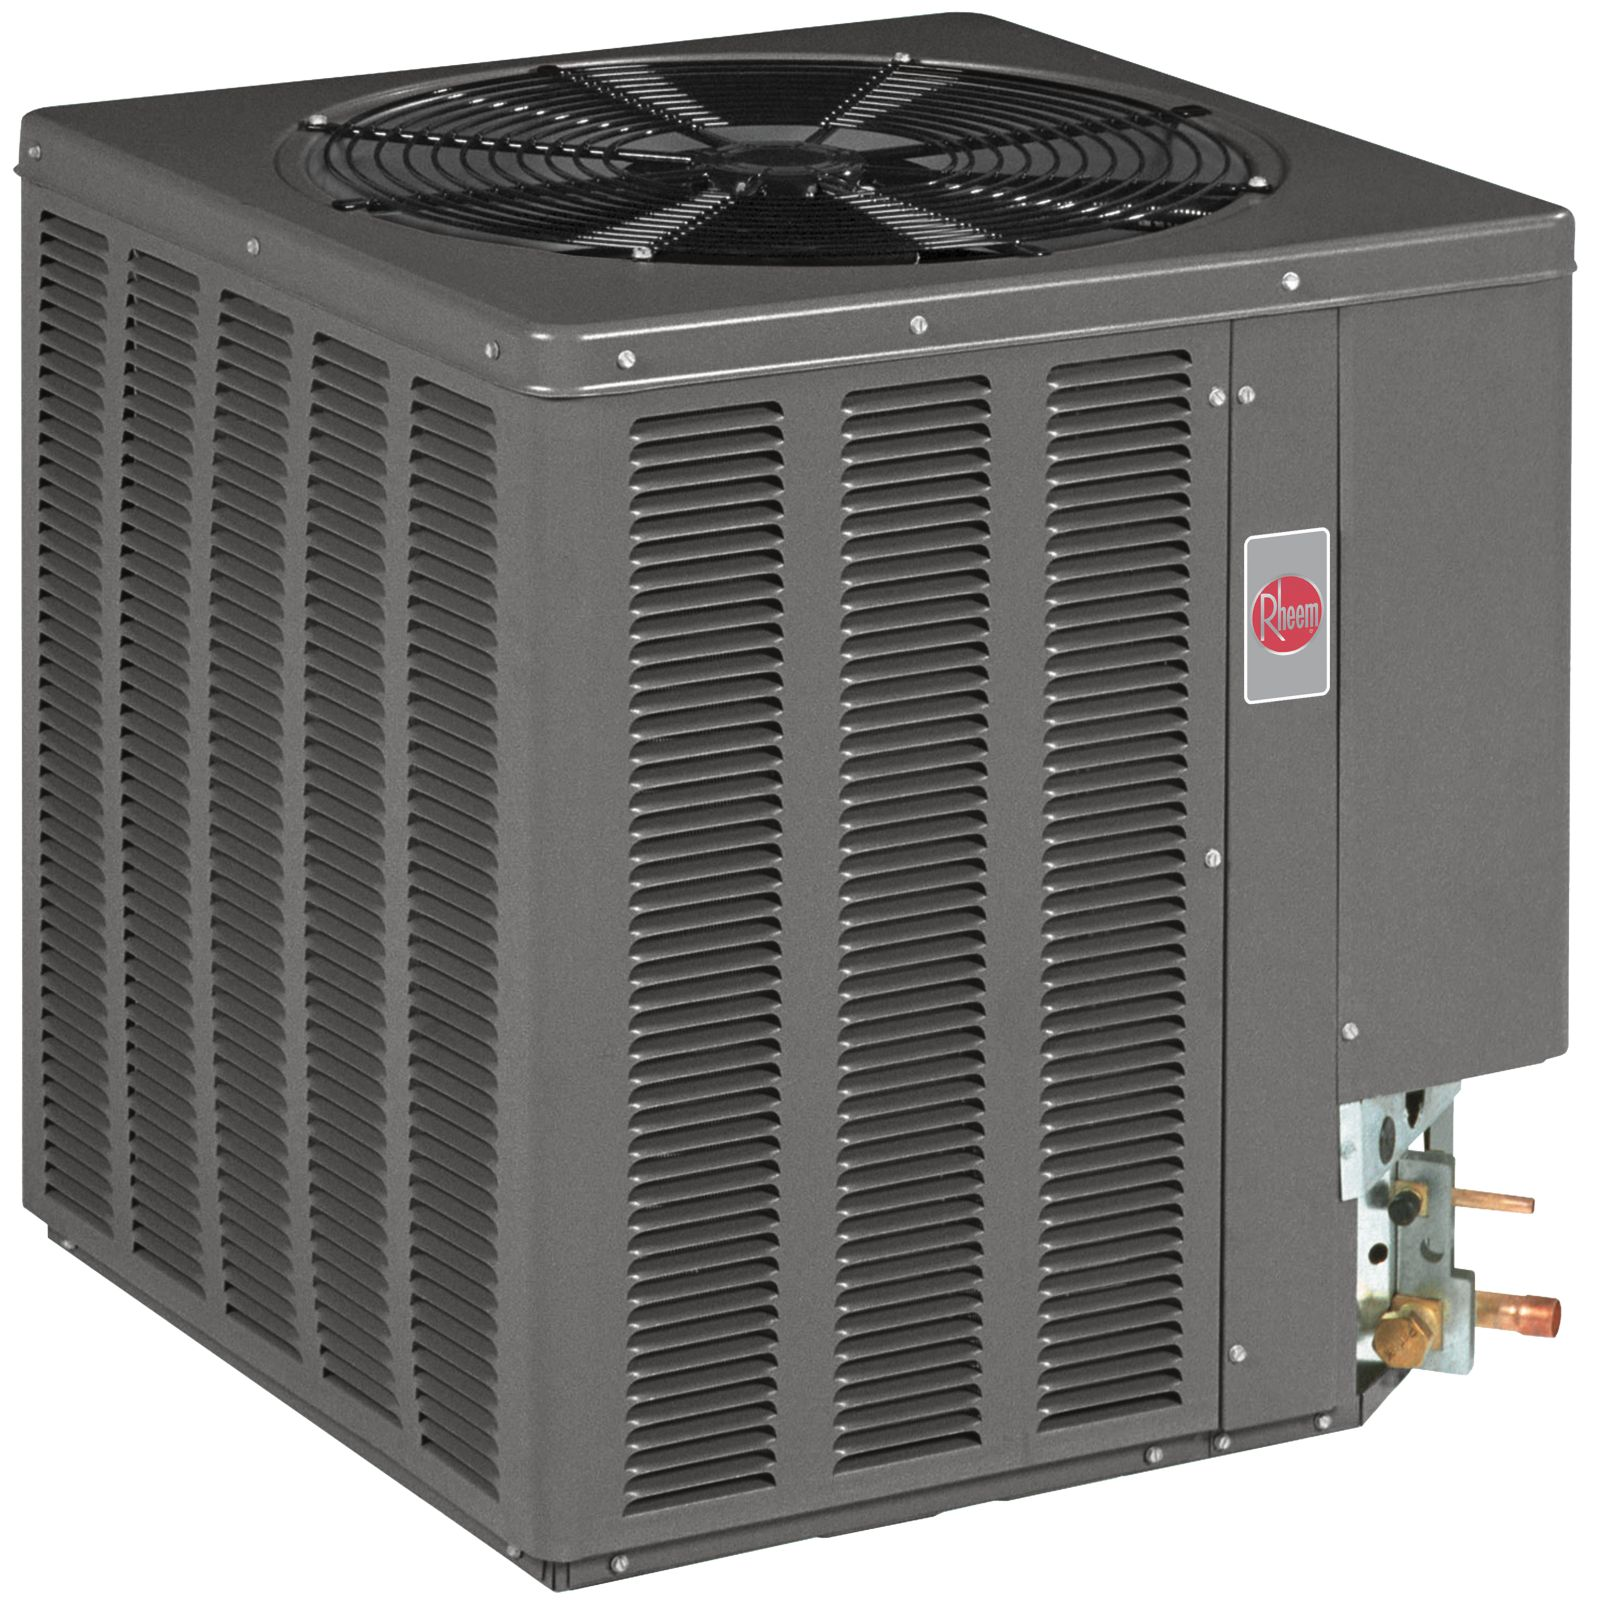 Rheem 14AJM49A01 - Value Series 4 Ton, 14 SEER, R410A Air Conditioner Condenser